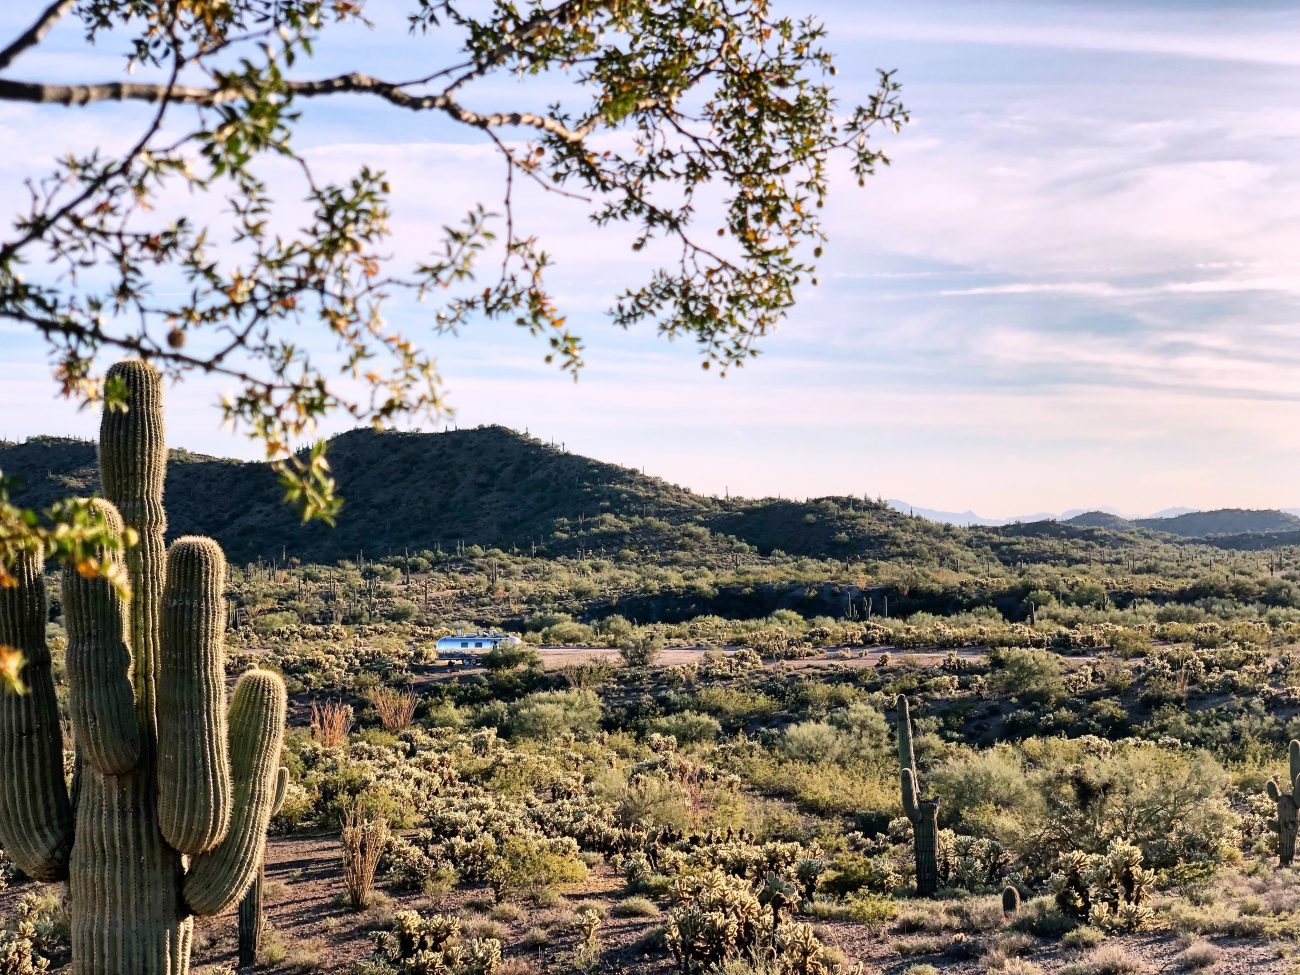 Boondocking in Wickenburg, AZ